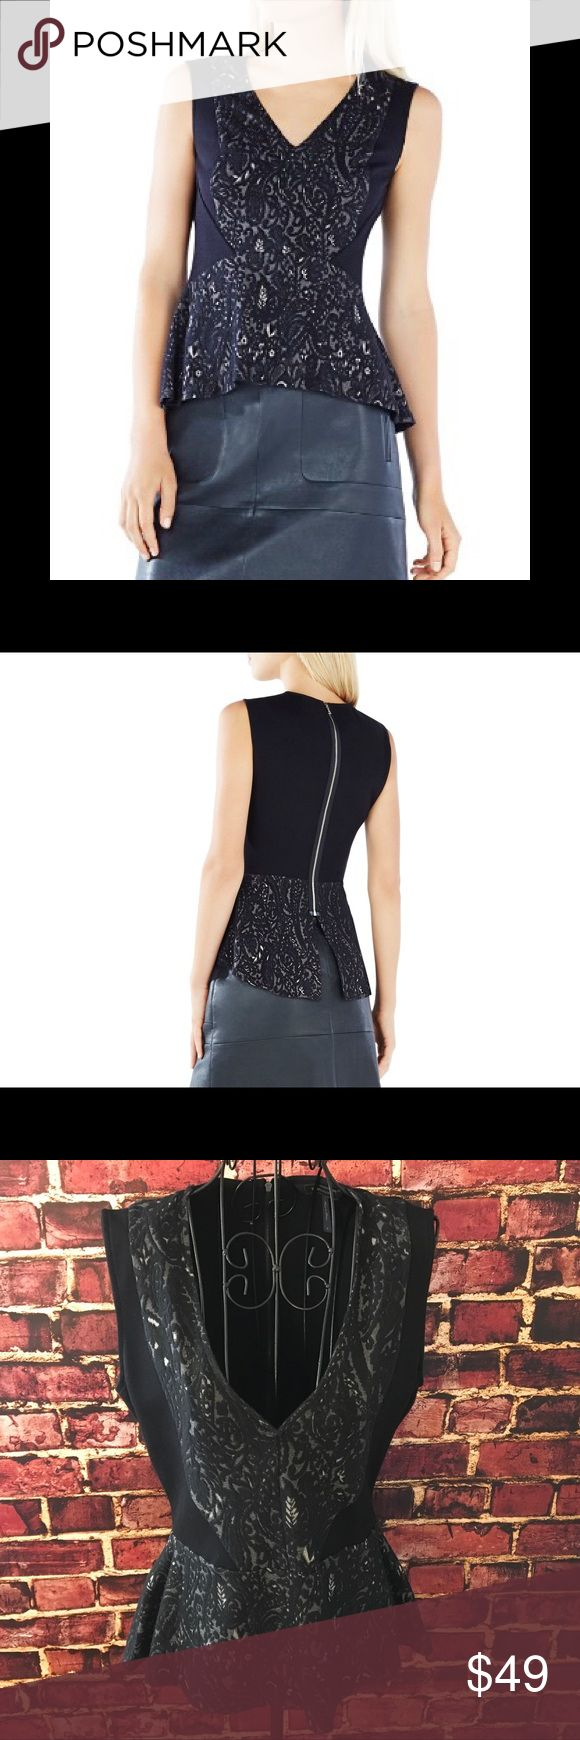 """🆕Listing! BCBGMaxAzria """"Steffiana"""" Peplum top Gorgeous black lace knit jacquard peplum top by BCBGMAXAZRIA. A great option to have in your wardrobe for a night out on the town or for your next special occasion. V-neck. Sleeveless. Exposed back zipper. Machine washable. Measures 23"""" from back neck to hem. Like new condition. BCBGMaxAzria Tops"""